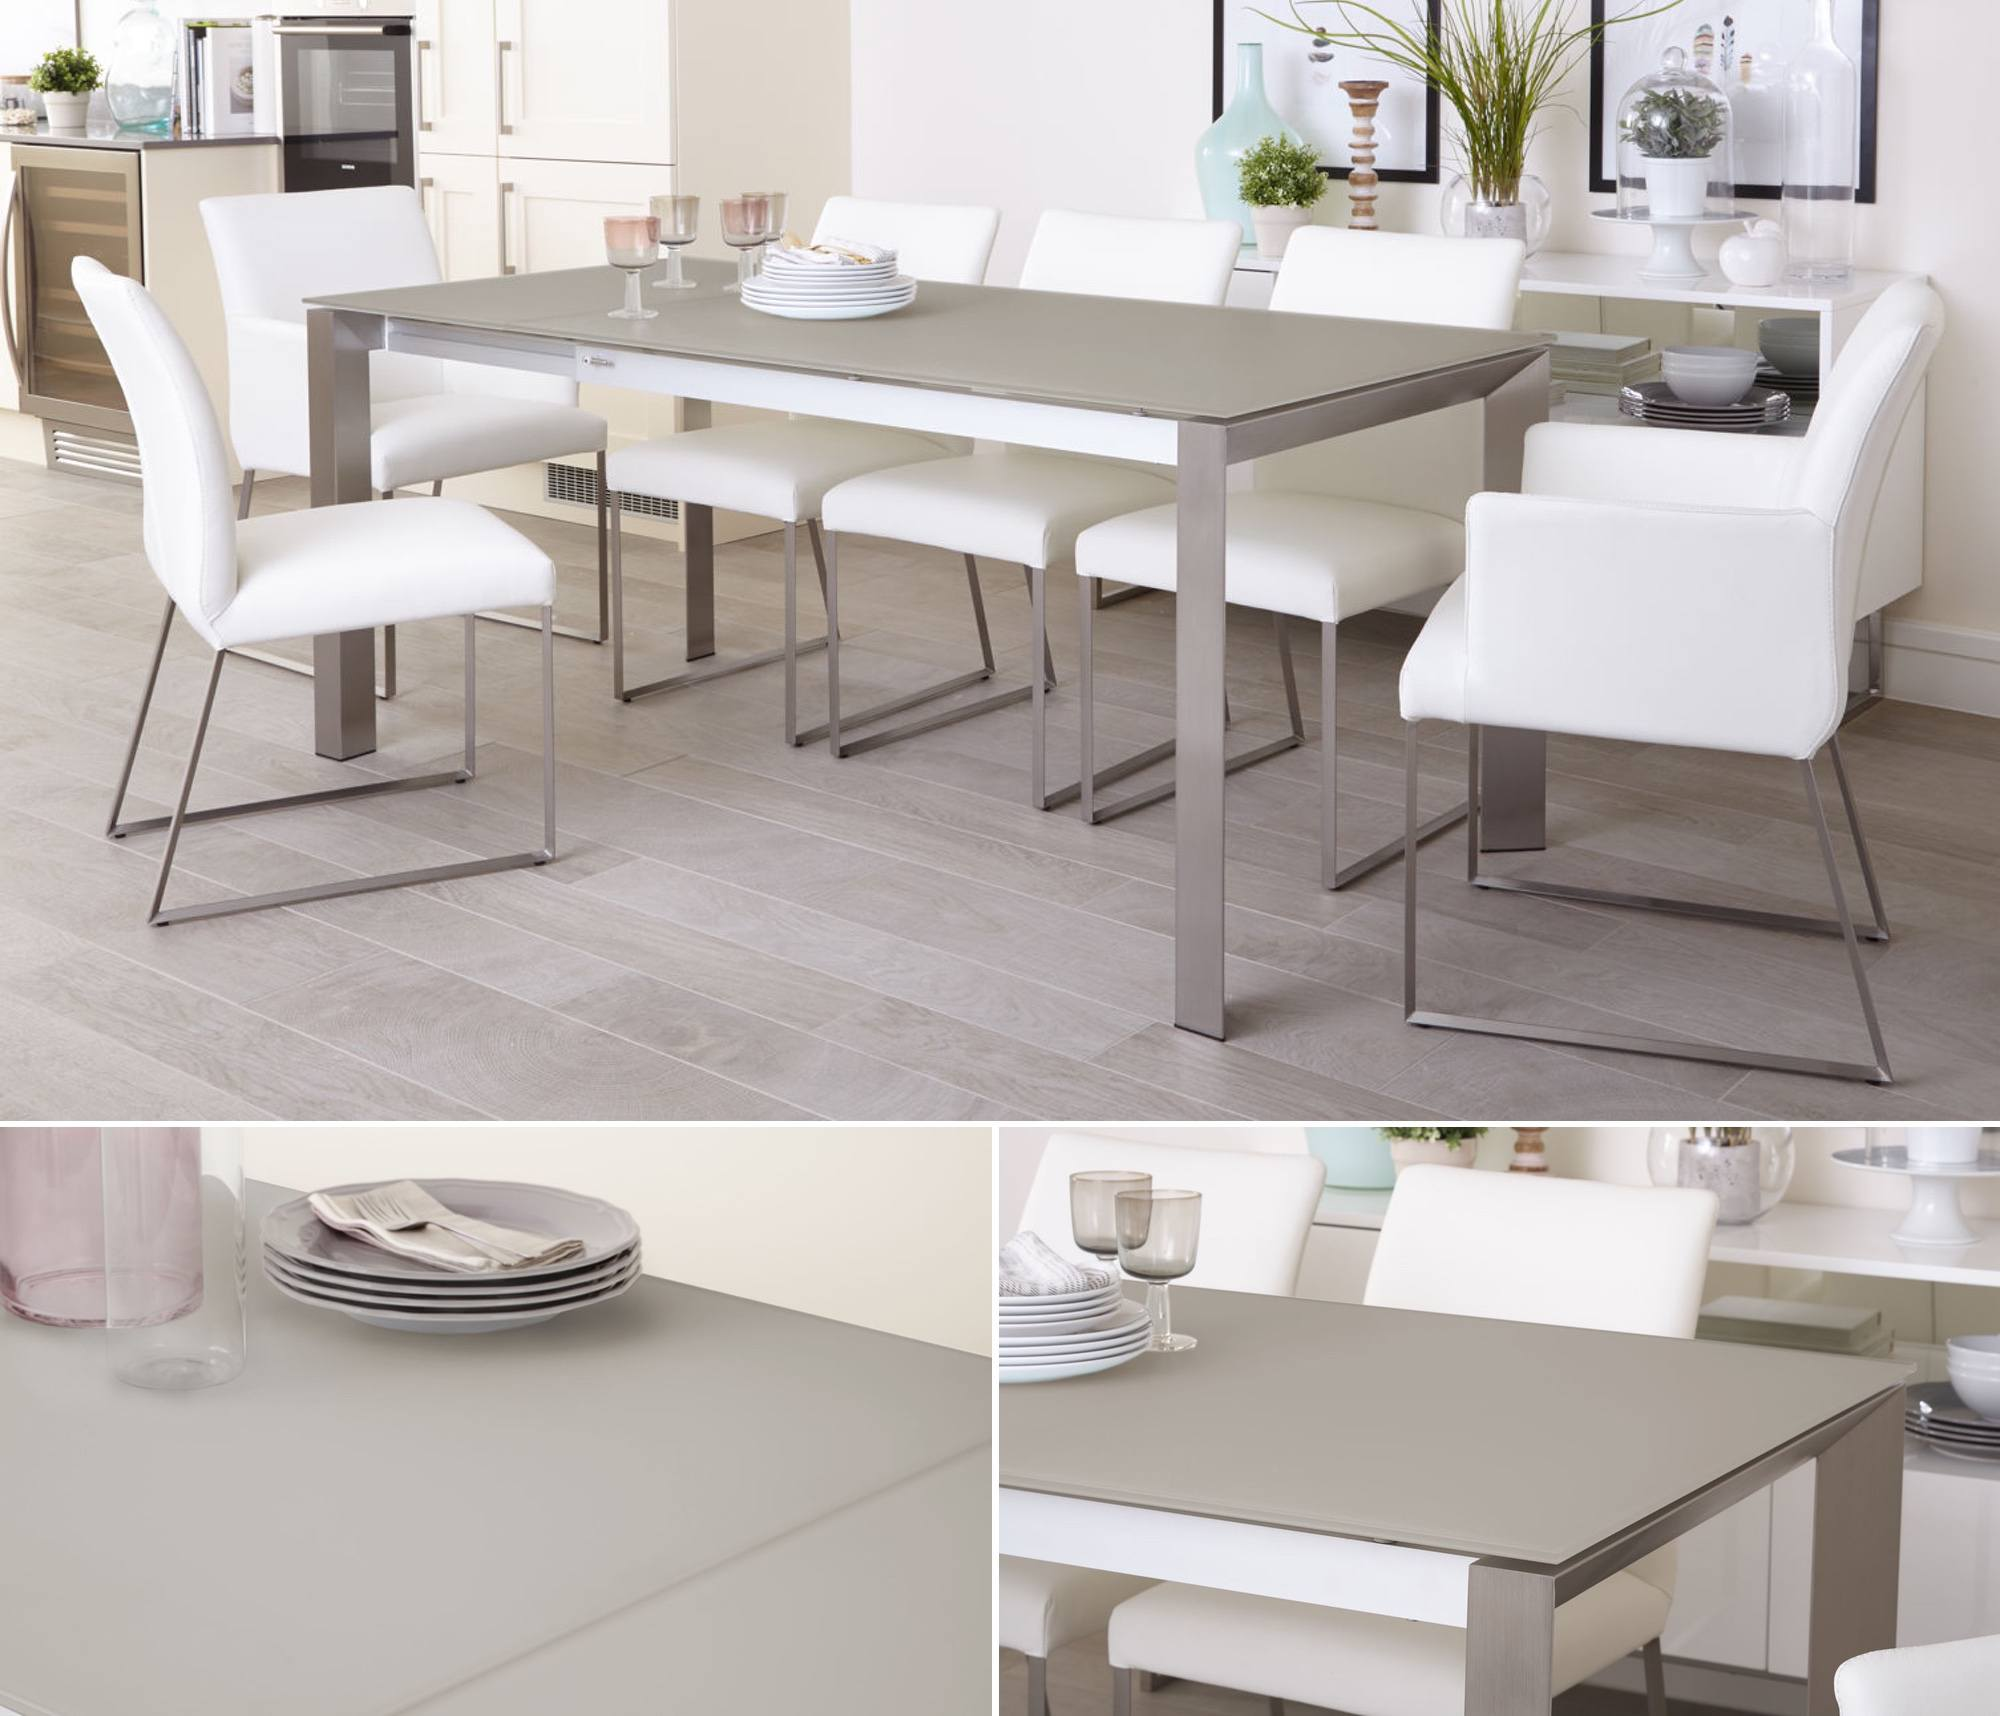 Grey Frosted Glass Table Finish - Eve Frosted Glass Extending Dining Table in Grey and Brushed Metal Dining Table